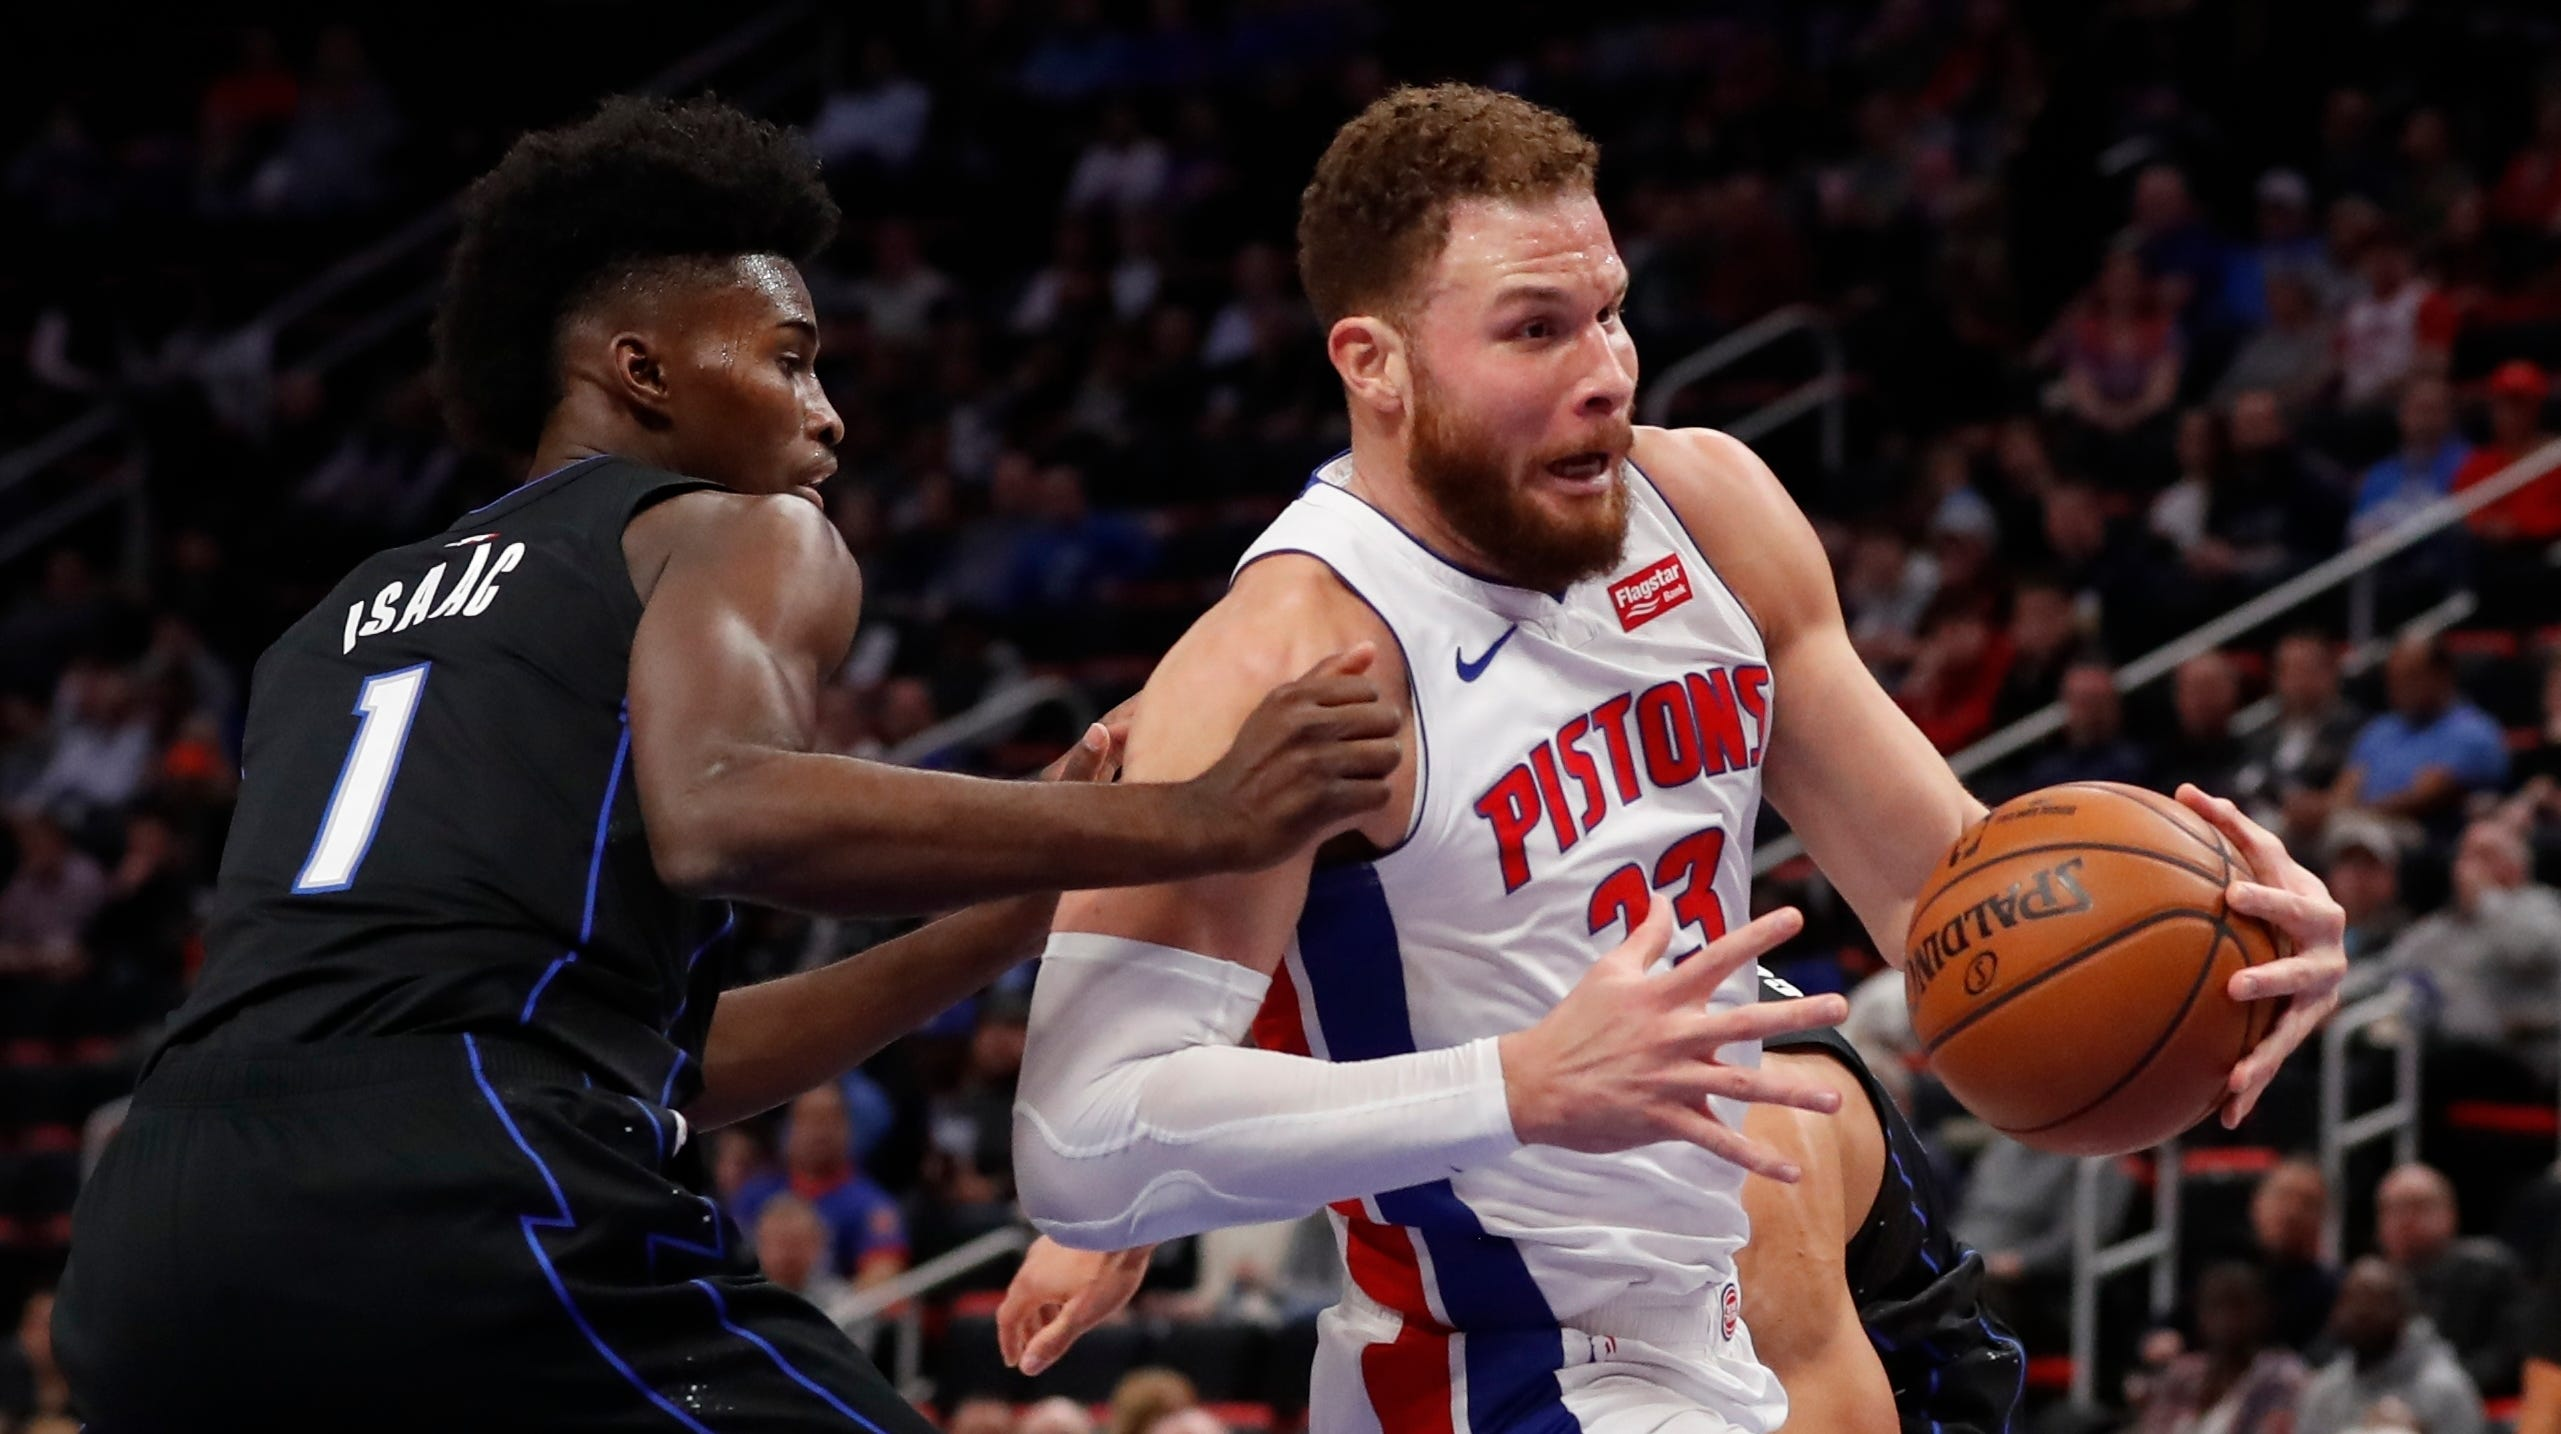 Detroit Pistons forward Blake Griffin (23) drives as Orlando Magic forward Jonathan Isaac (1) defends during the first half on Wednesday.